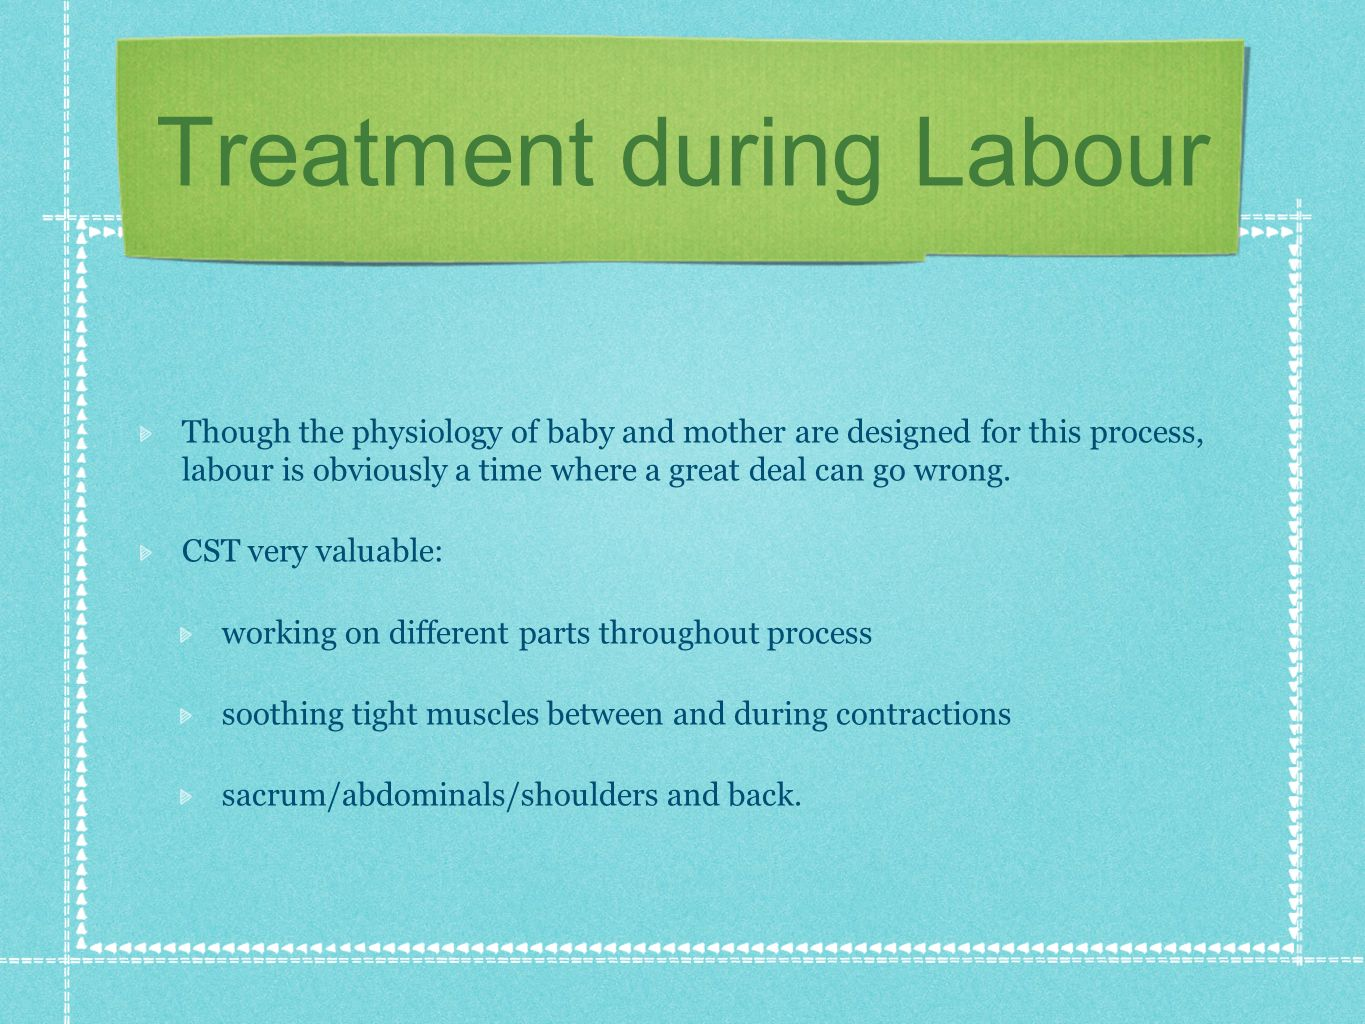 Treatment during Labour Though the physiology of baby and mother are designed for this process, labour is obviously a time where a great deal can go wrong.